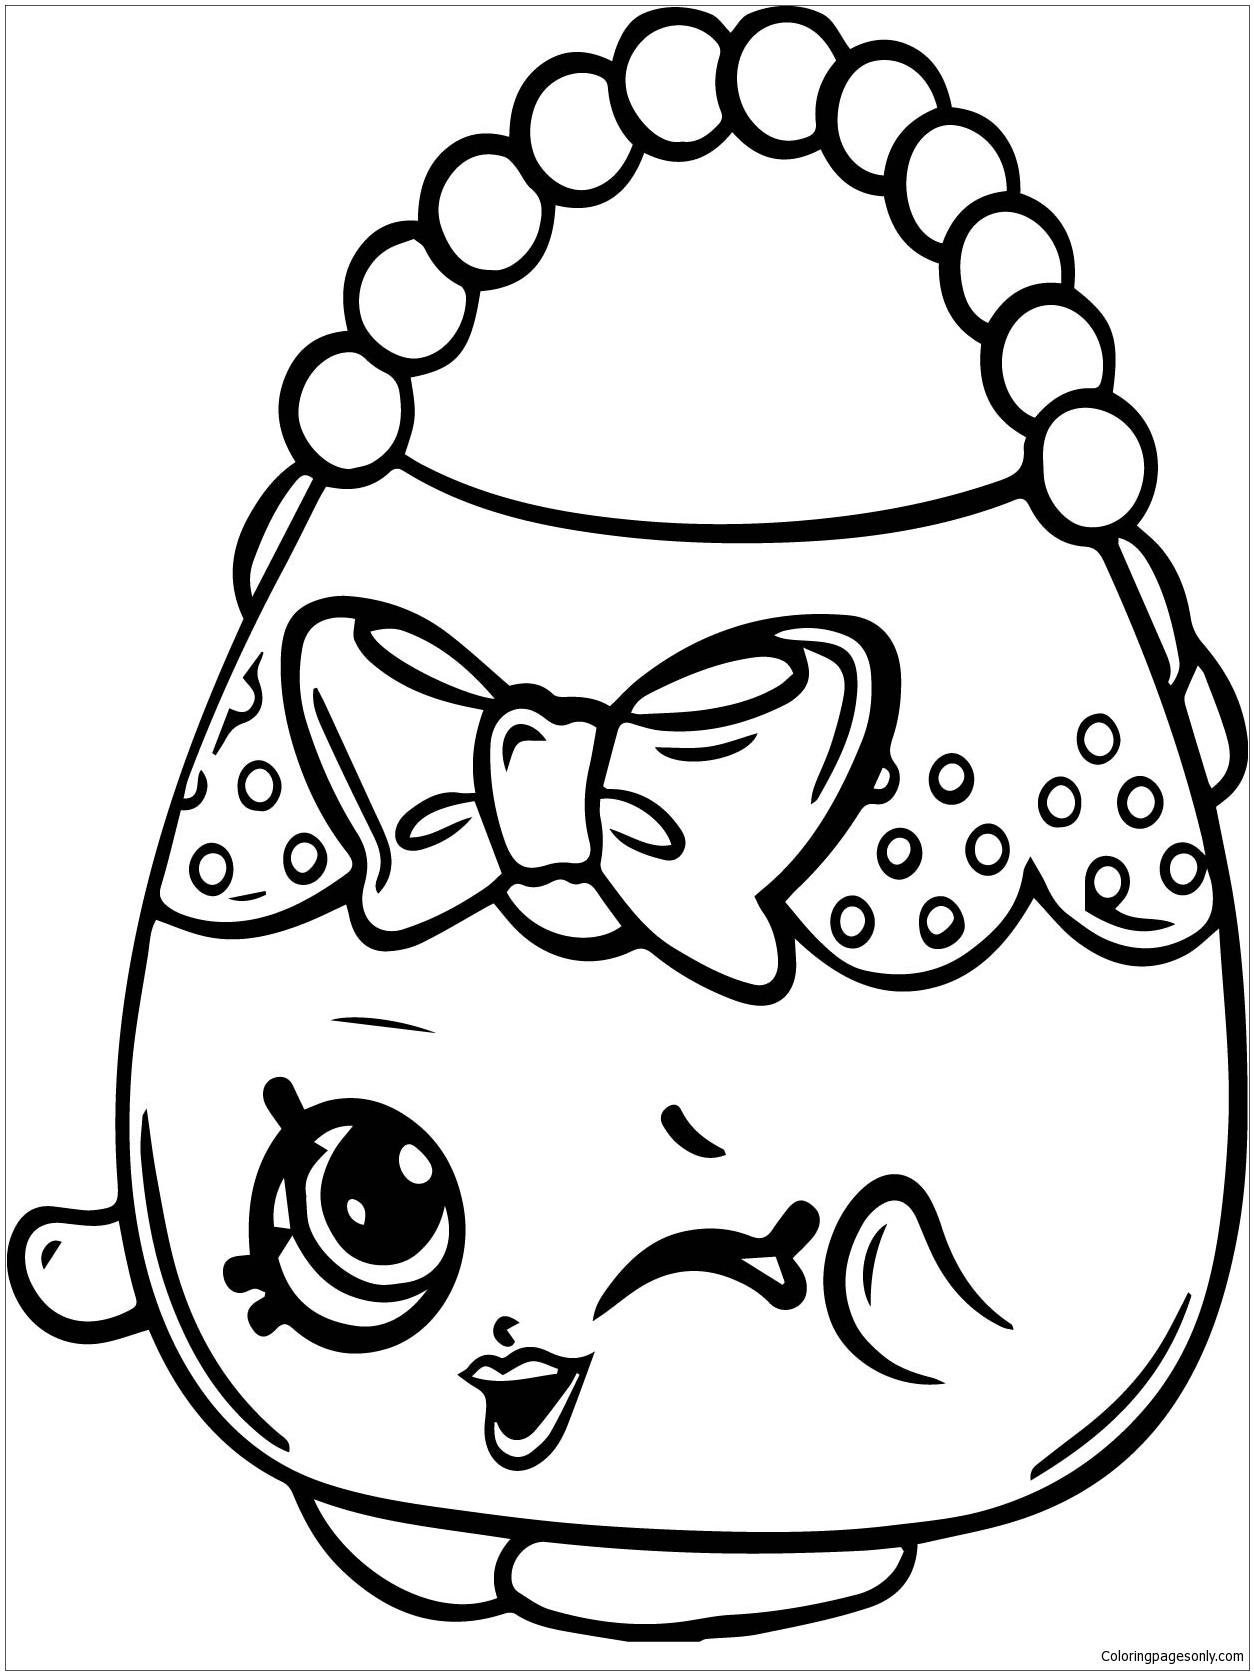 purse coloring page coloring pages purse entertainment gt shopping free coloring purse page